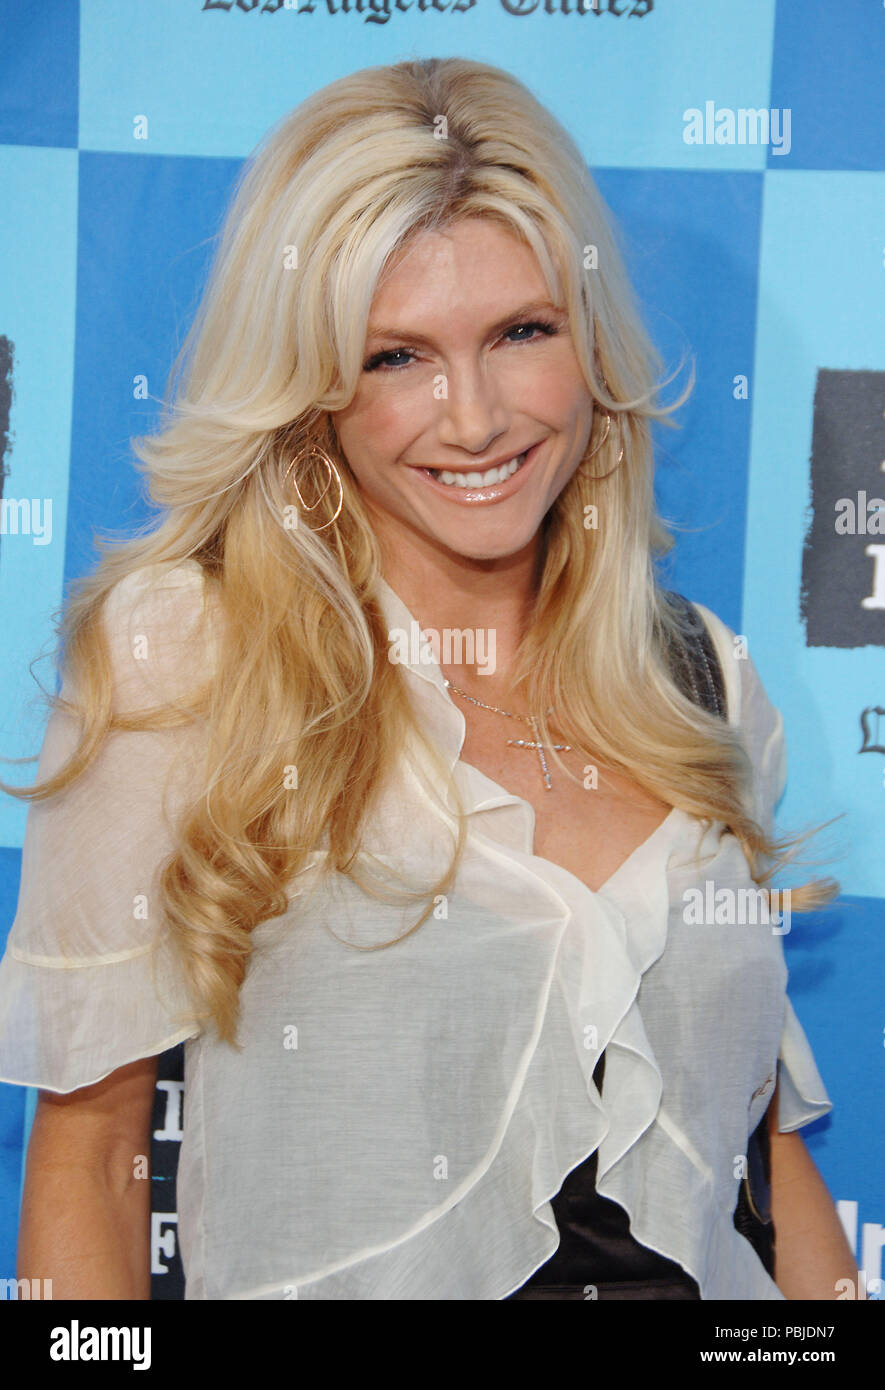 Brande Roderick High Resolution Stock Photography And Images Alamy